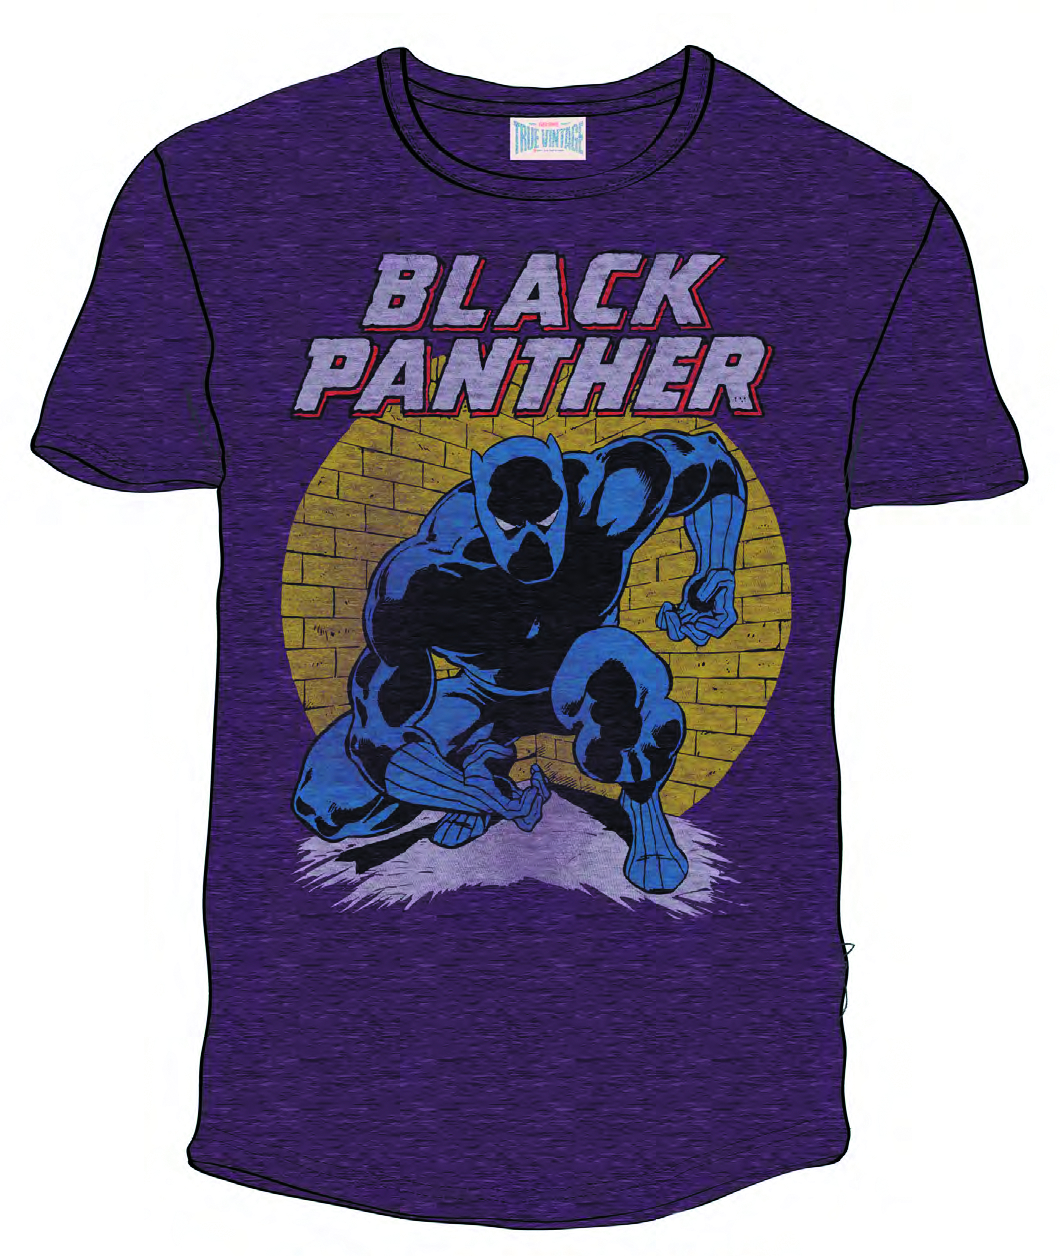 BLACK PANTHER PX BLACKBERRY HEATHER T/S XXL